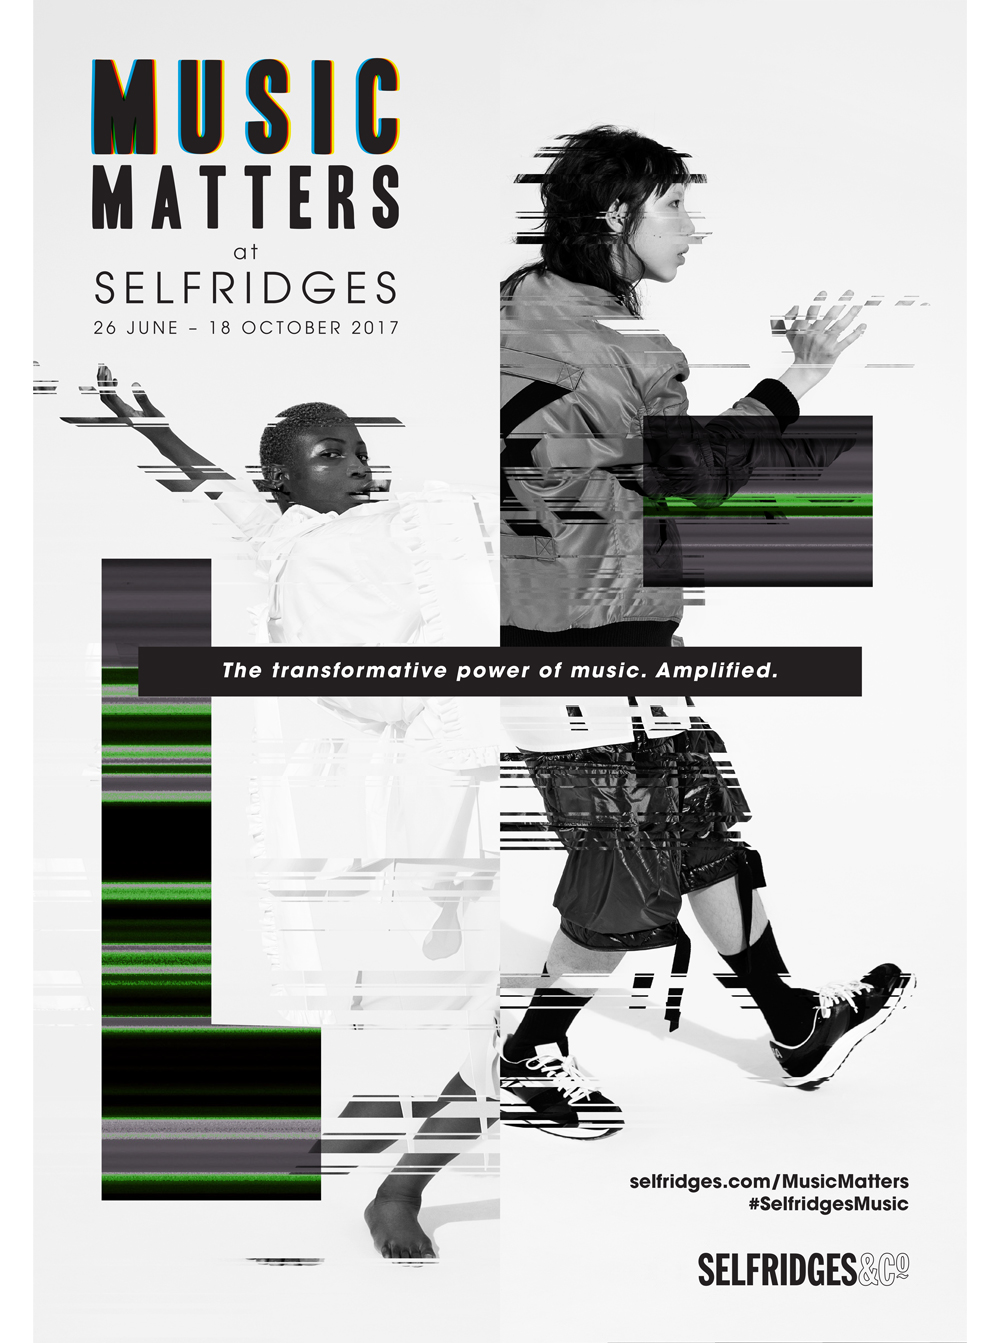 CS17009_Music_Matters_Hero_Poster_A2_AW_HR-3.jpg